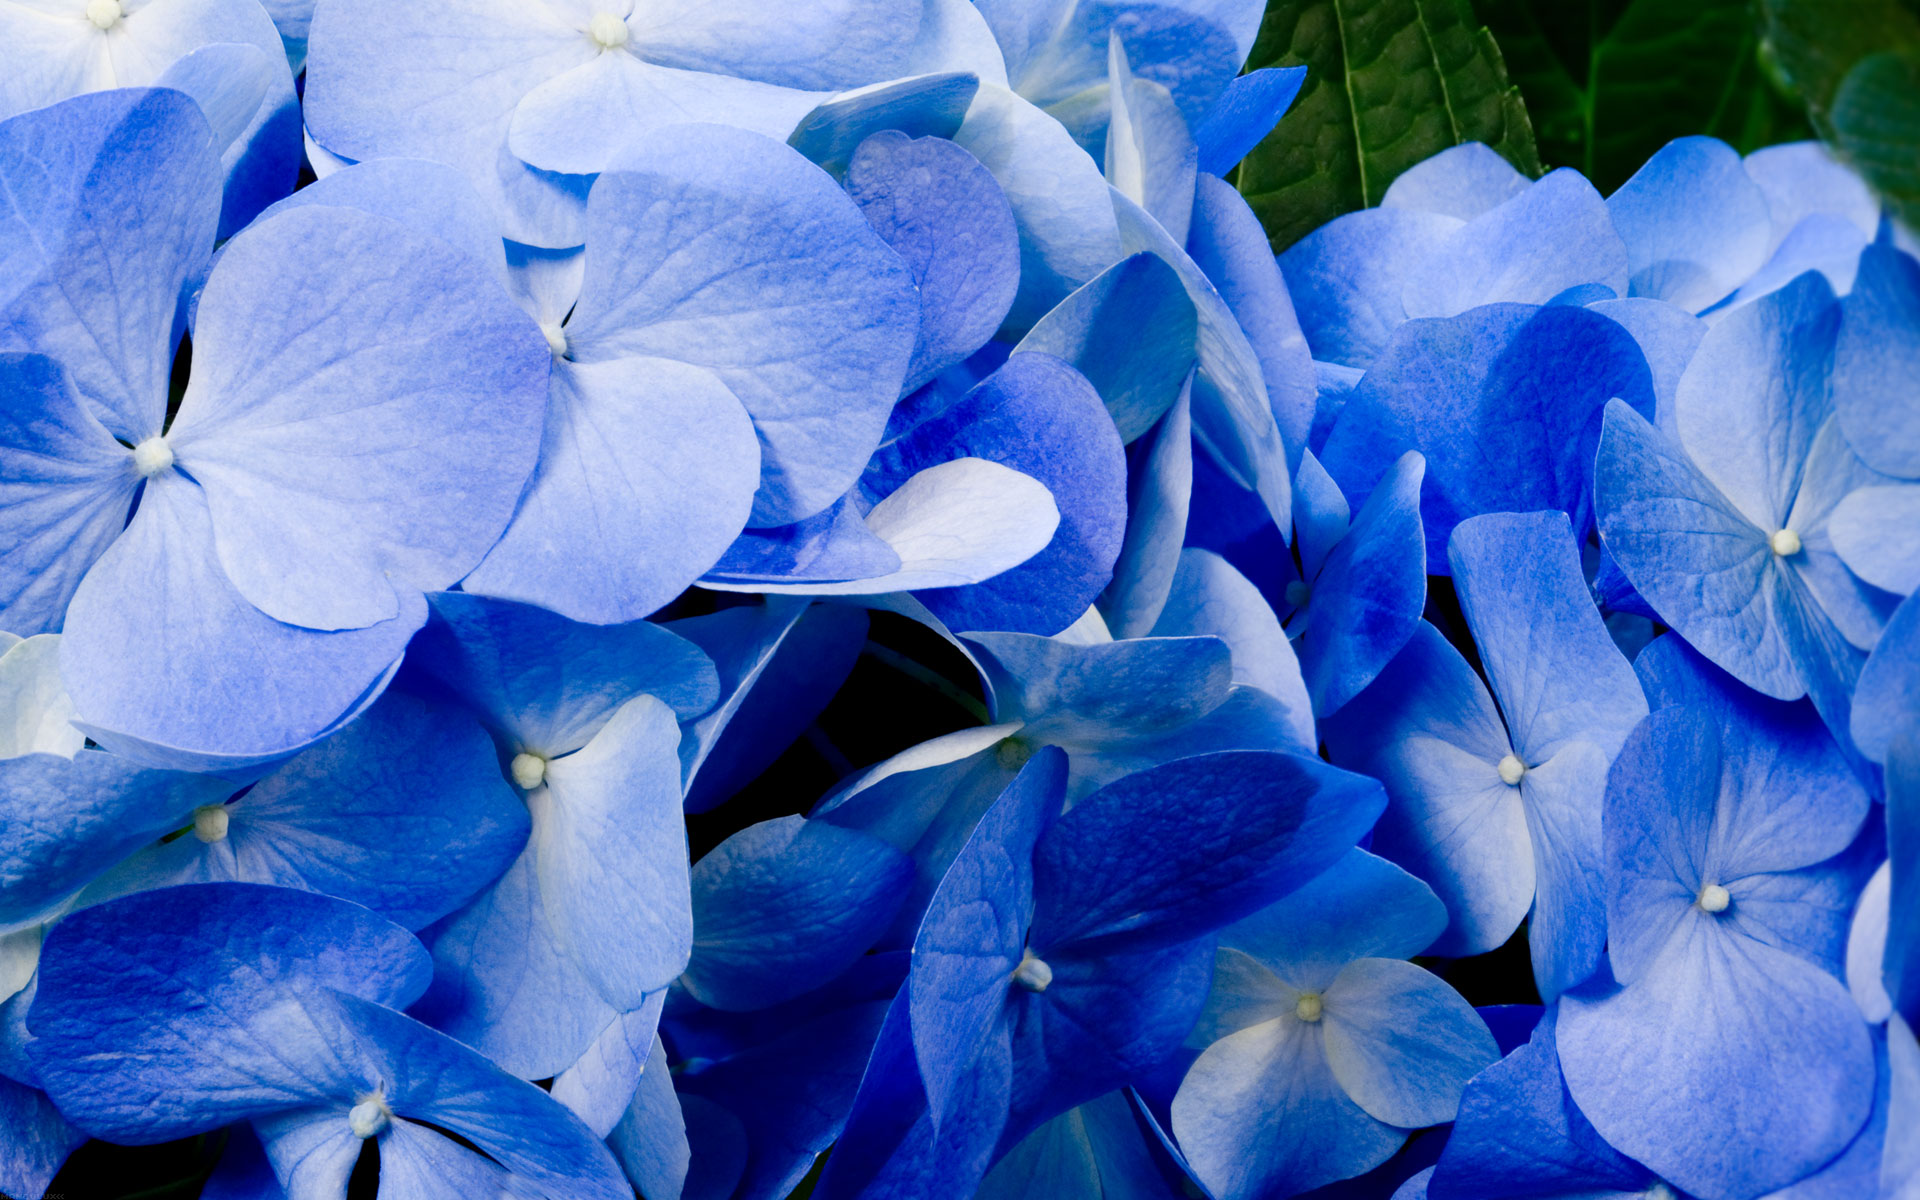 Blue Flower Wallpaper WallpaperSafari